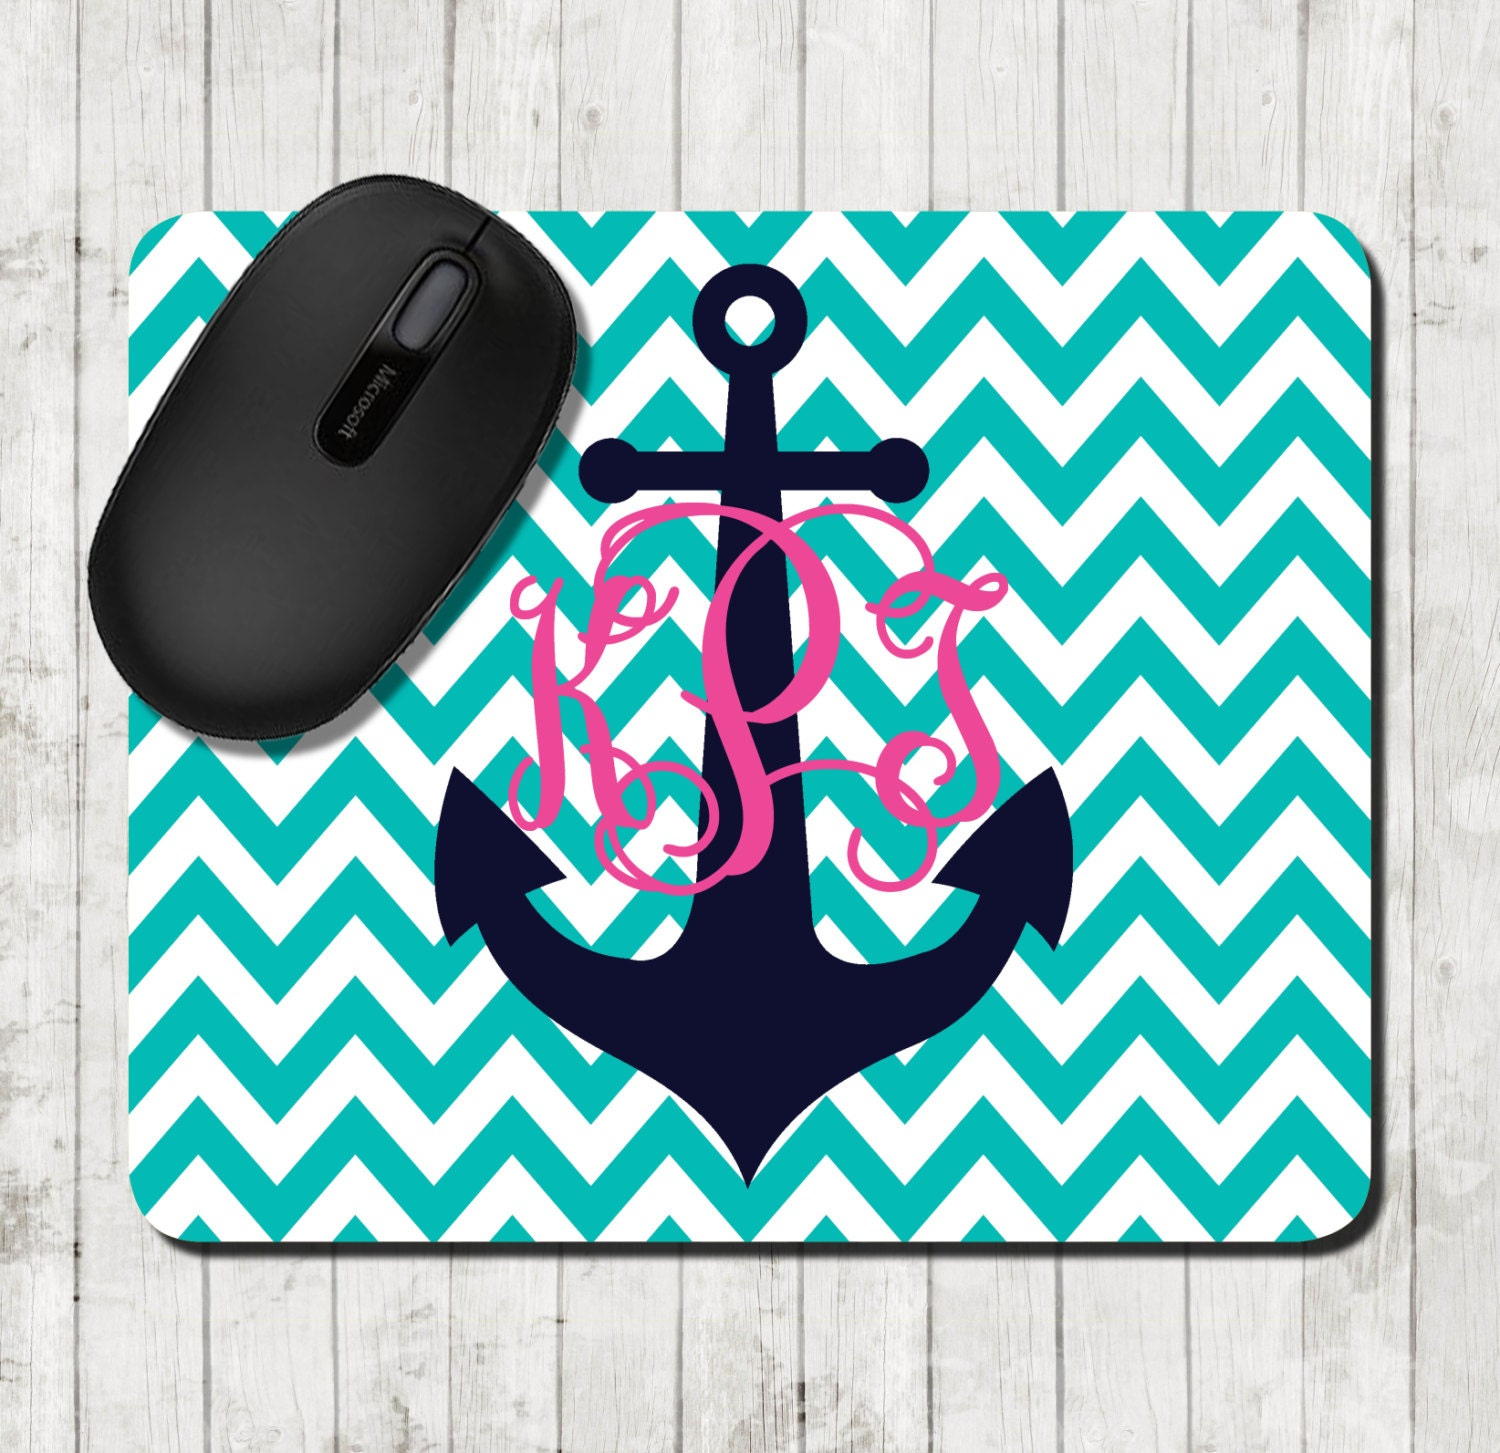 nautical mouse pad personalized mousepad chevron preppy office gifts